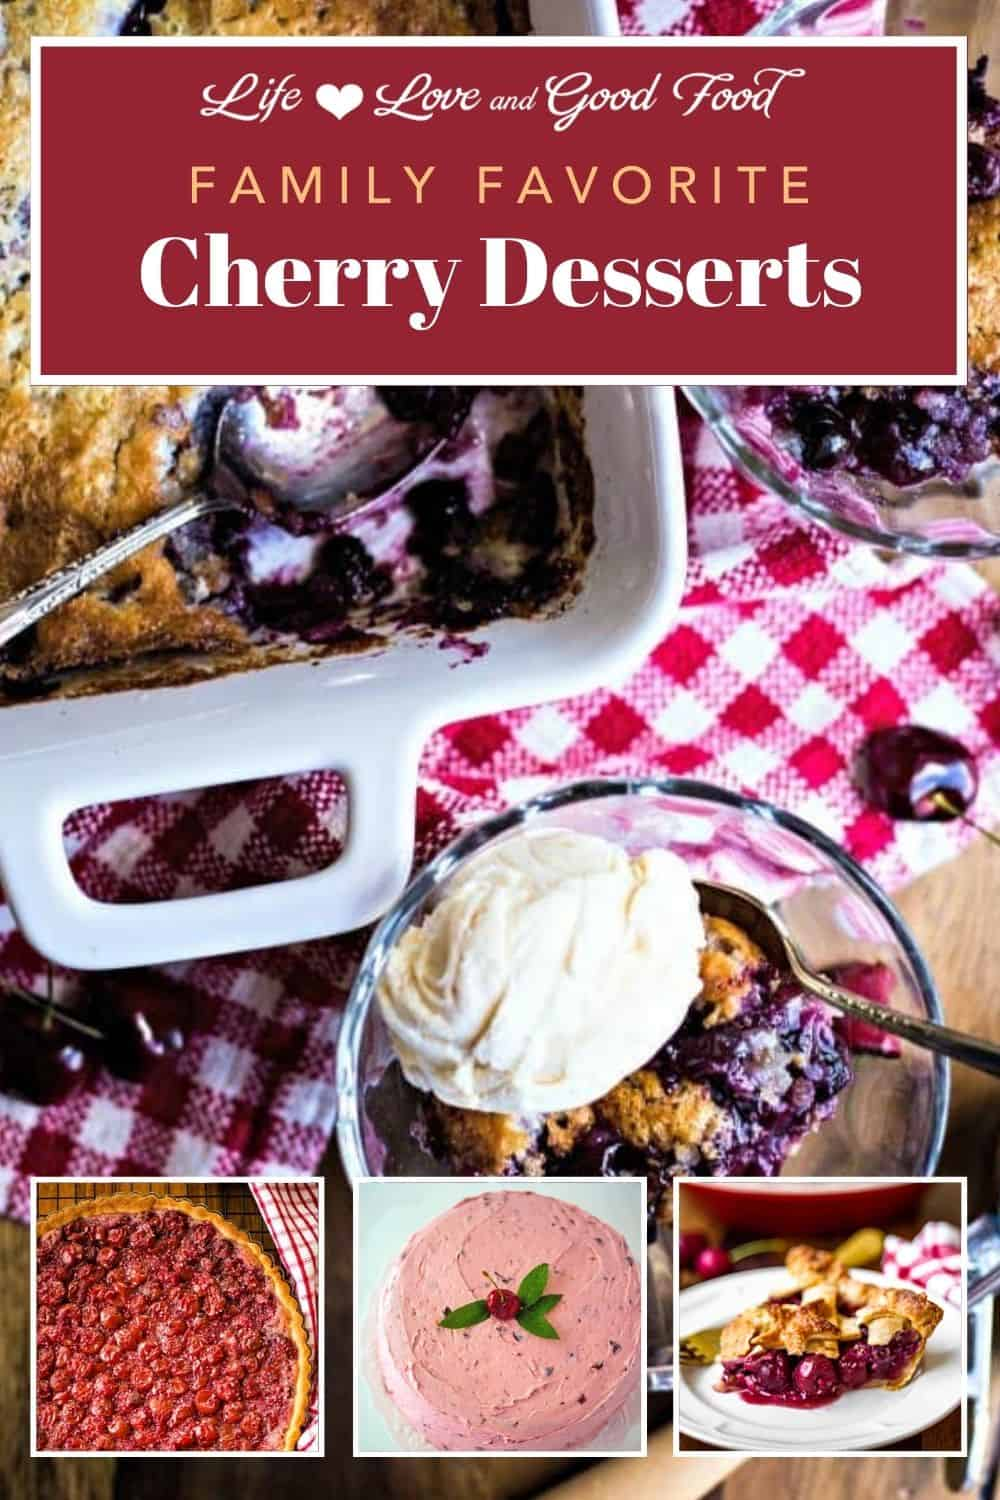 When the cherry blossoms burst in Spring, it's time to start getting excited for all the delicious Cherry Desserts to be made with fresh cherries come Summer! From fruit pies and cobblers to quick breads and cookies, sweet or tart, cherries make the best sweet Summer treats. These easy cherry dessert recipes feature fresh, frozen, canned, or dried cherries so you can enjoy baking with cherries all year long.